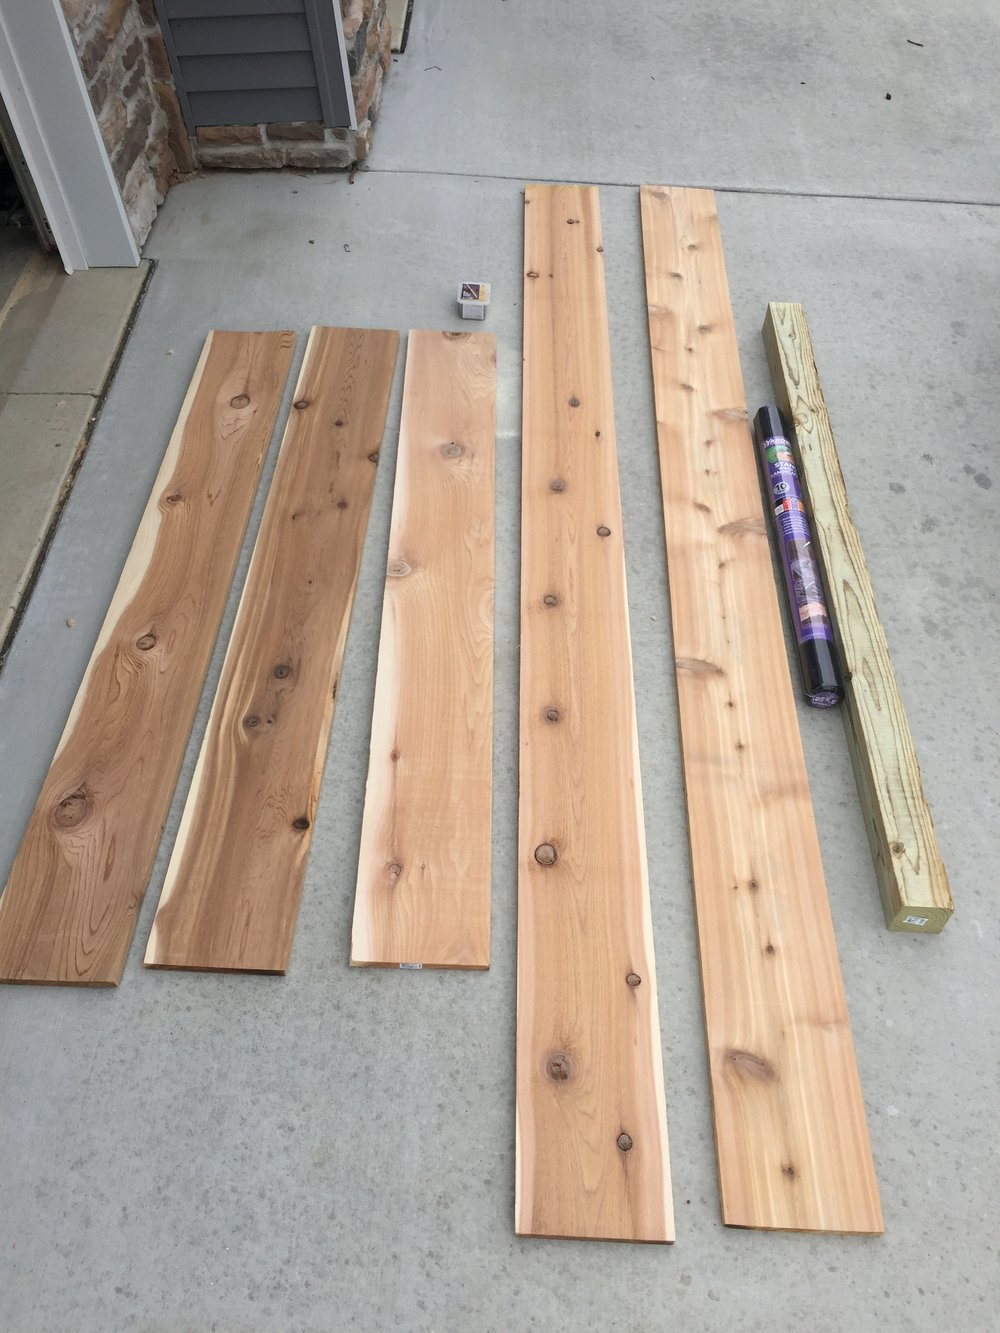 Cedar boards, screws, weed fabric